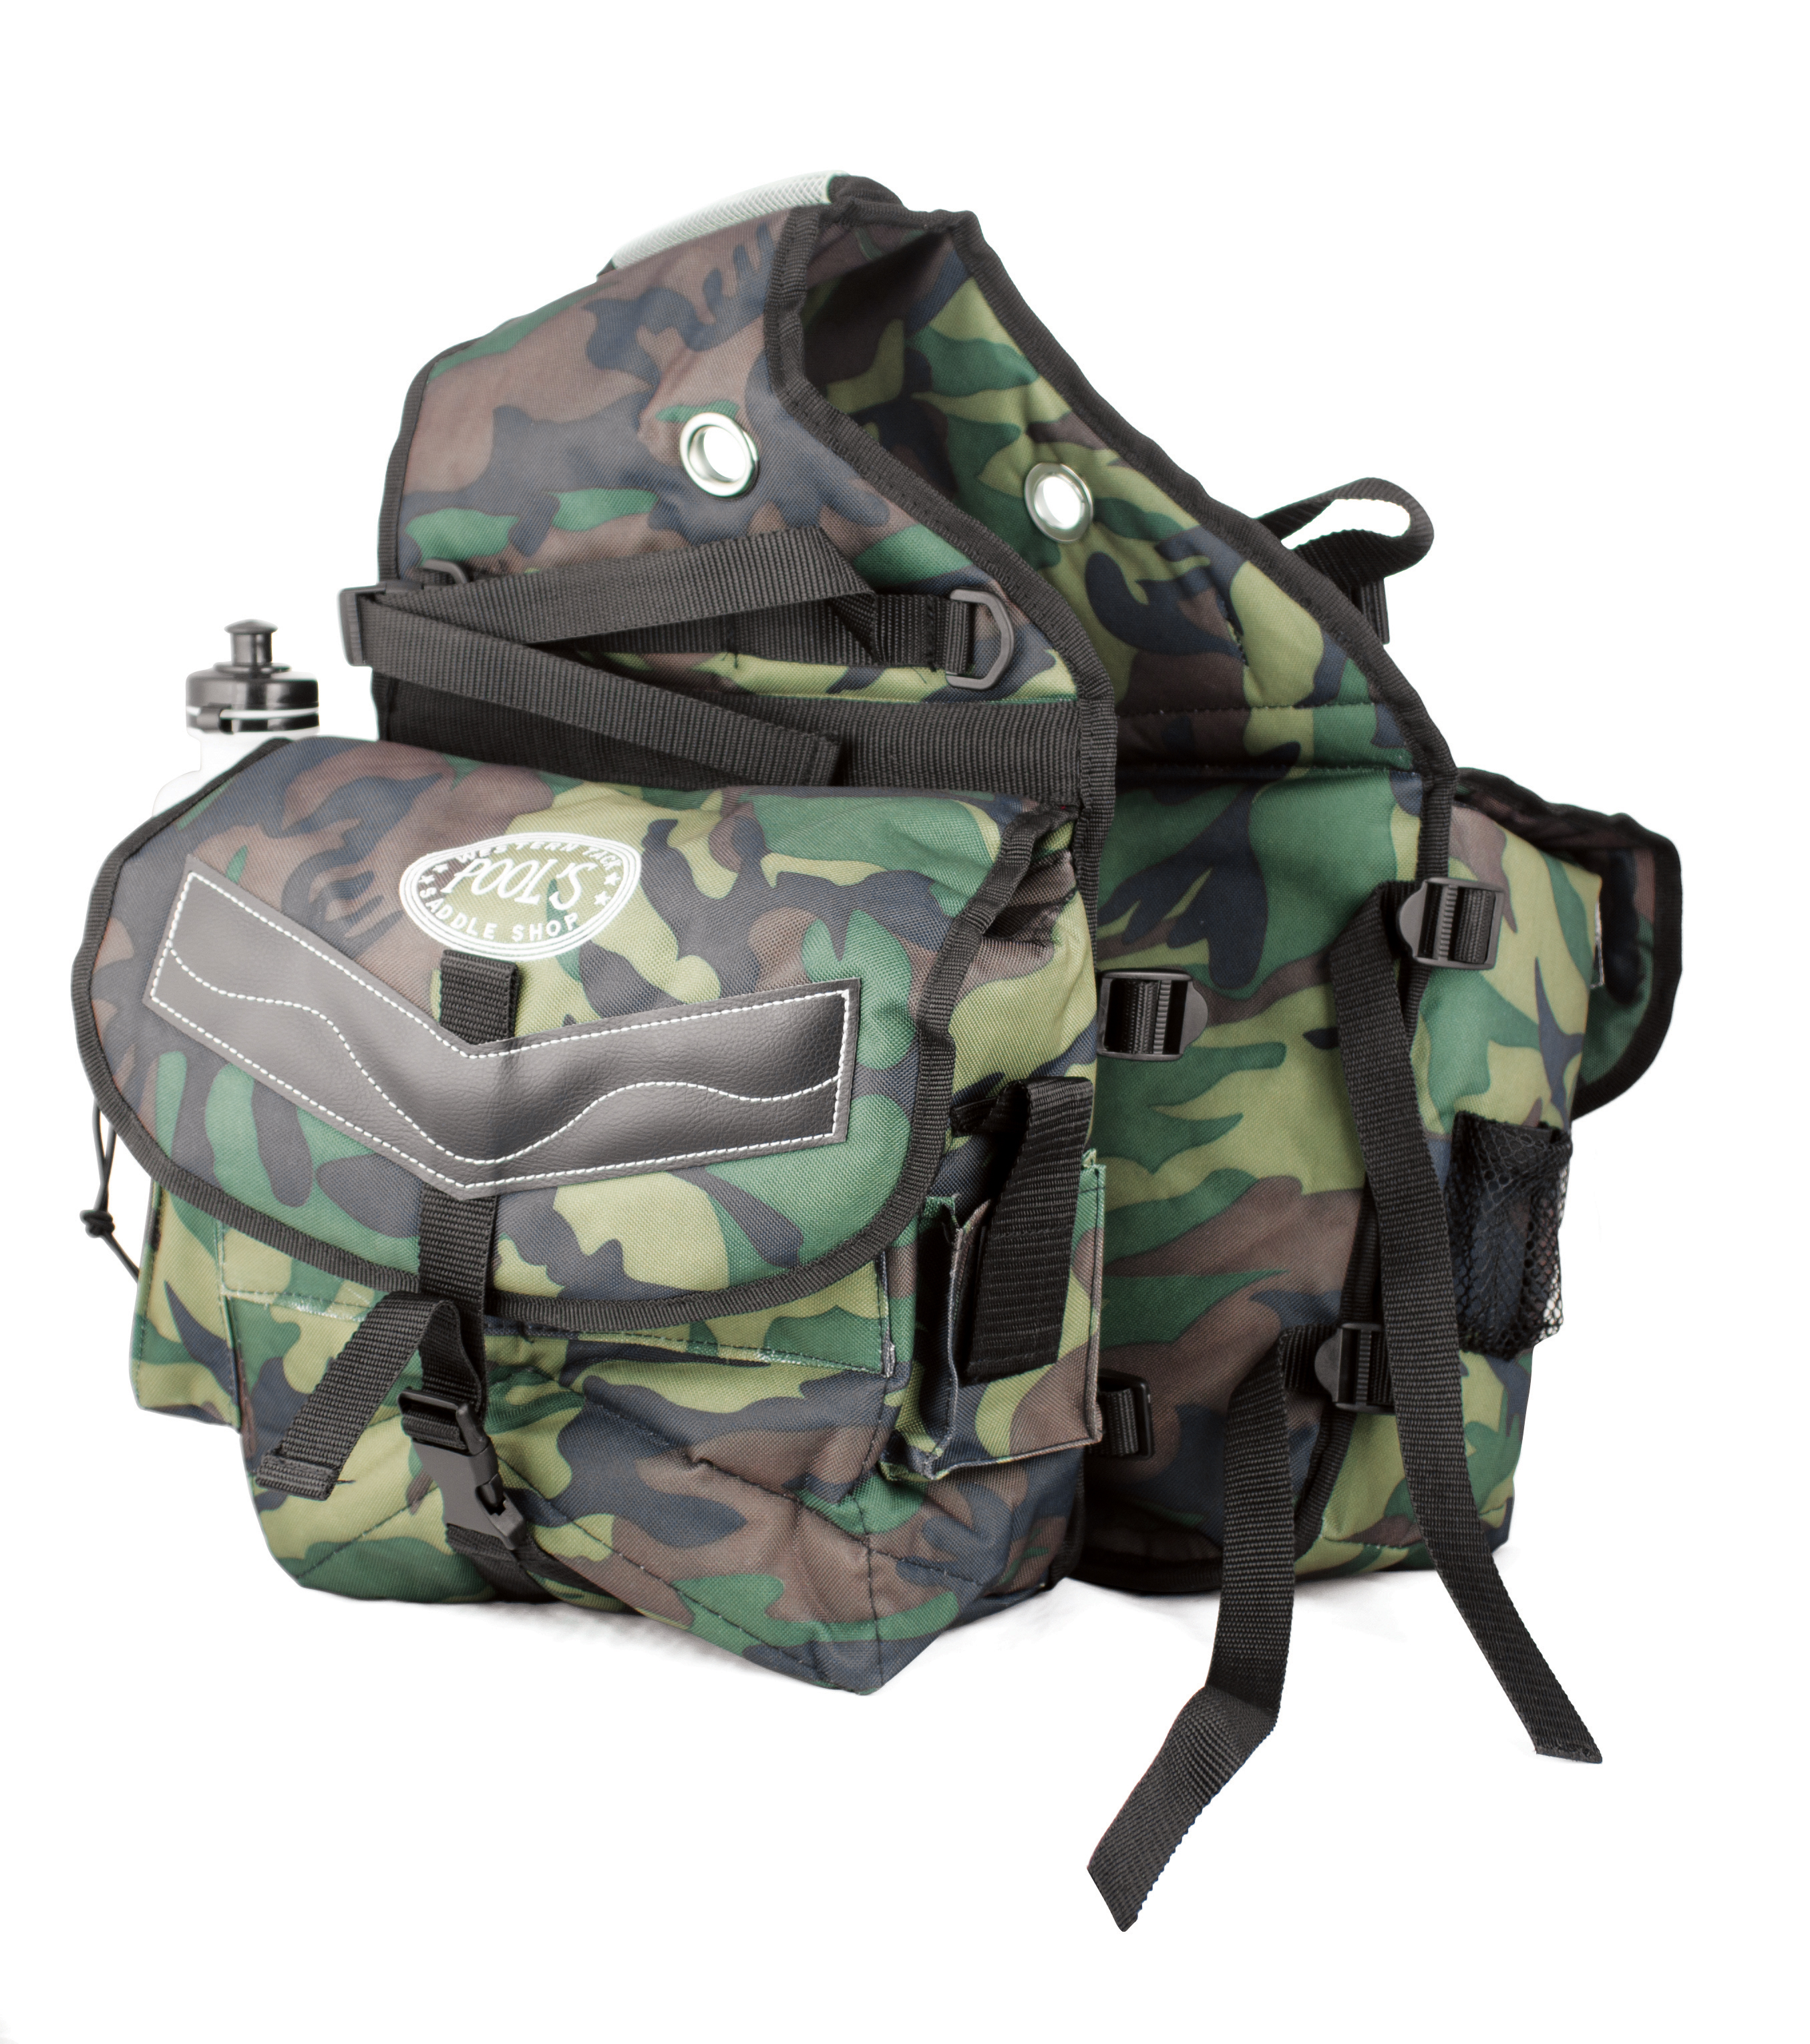 Saddlebag Camouflage Rear Pools Camouflage/Green